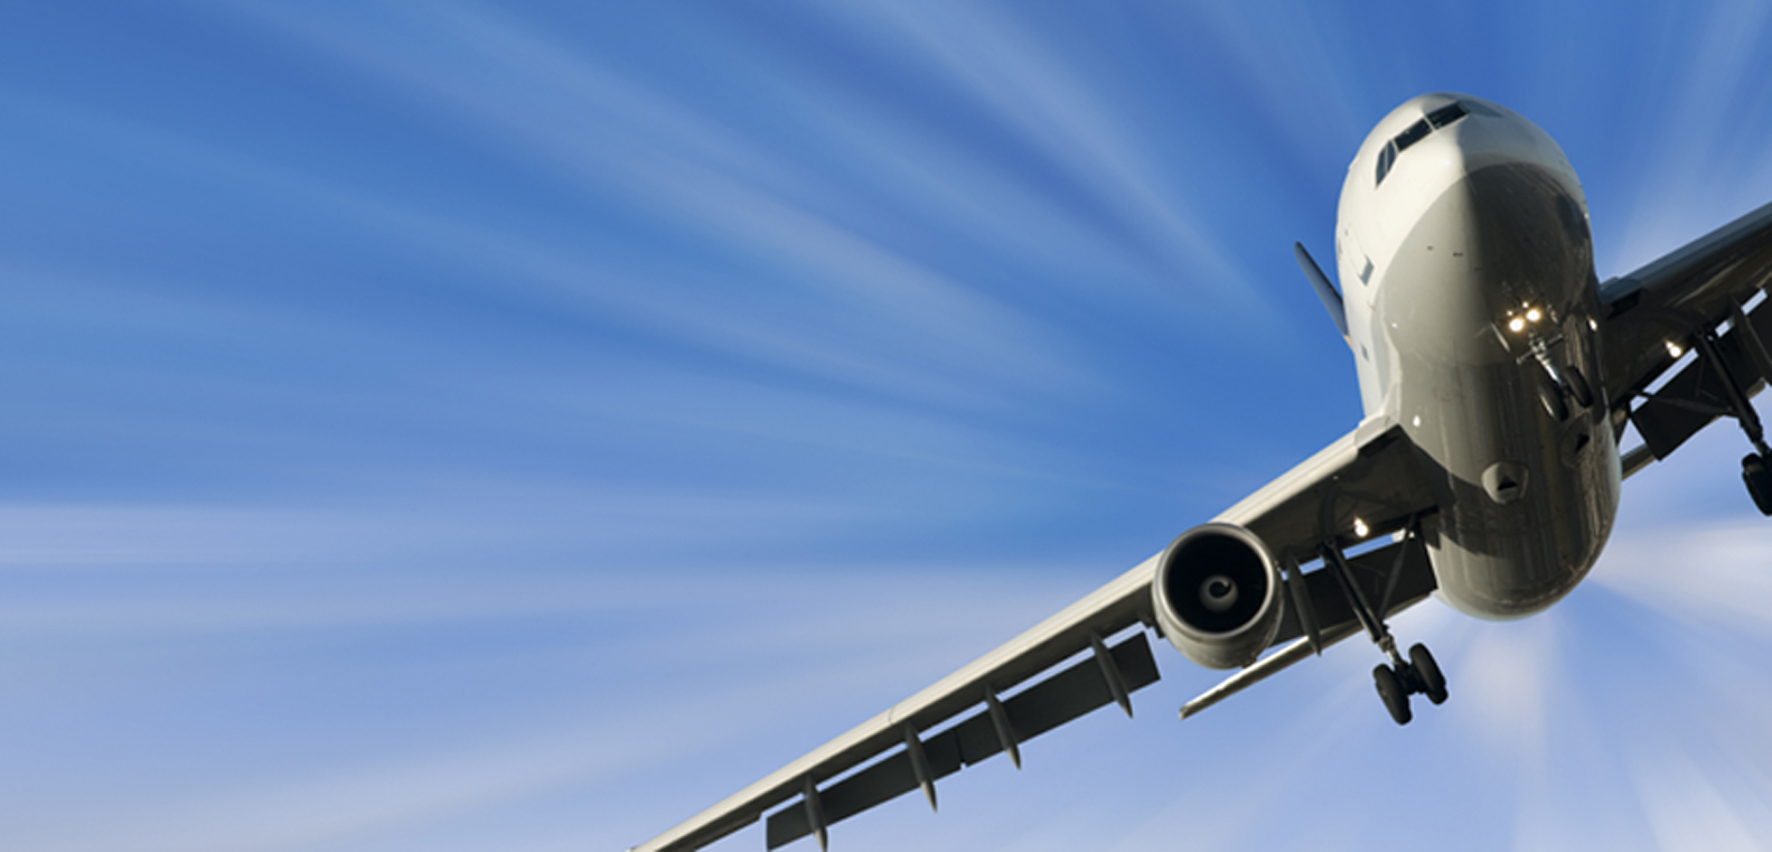 Aerospace subcontract manufacturing